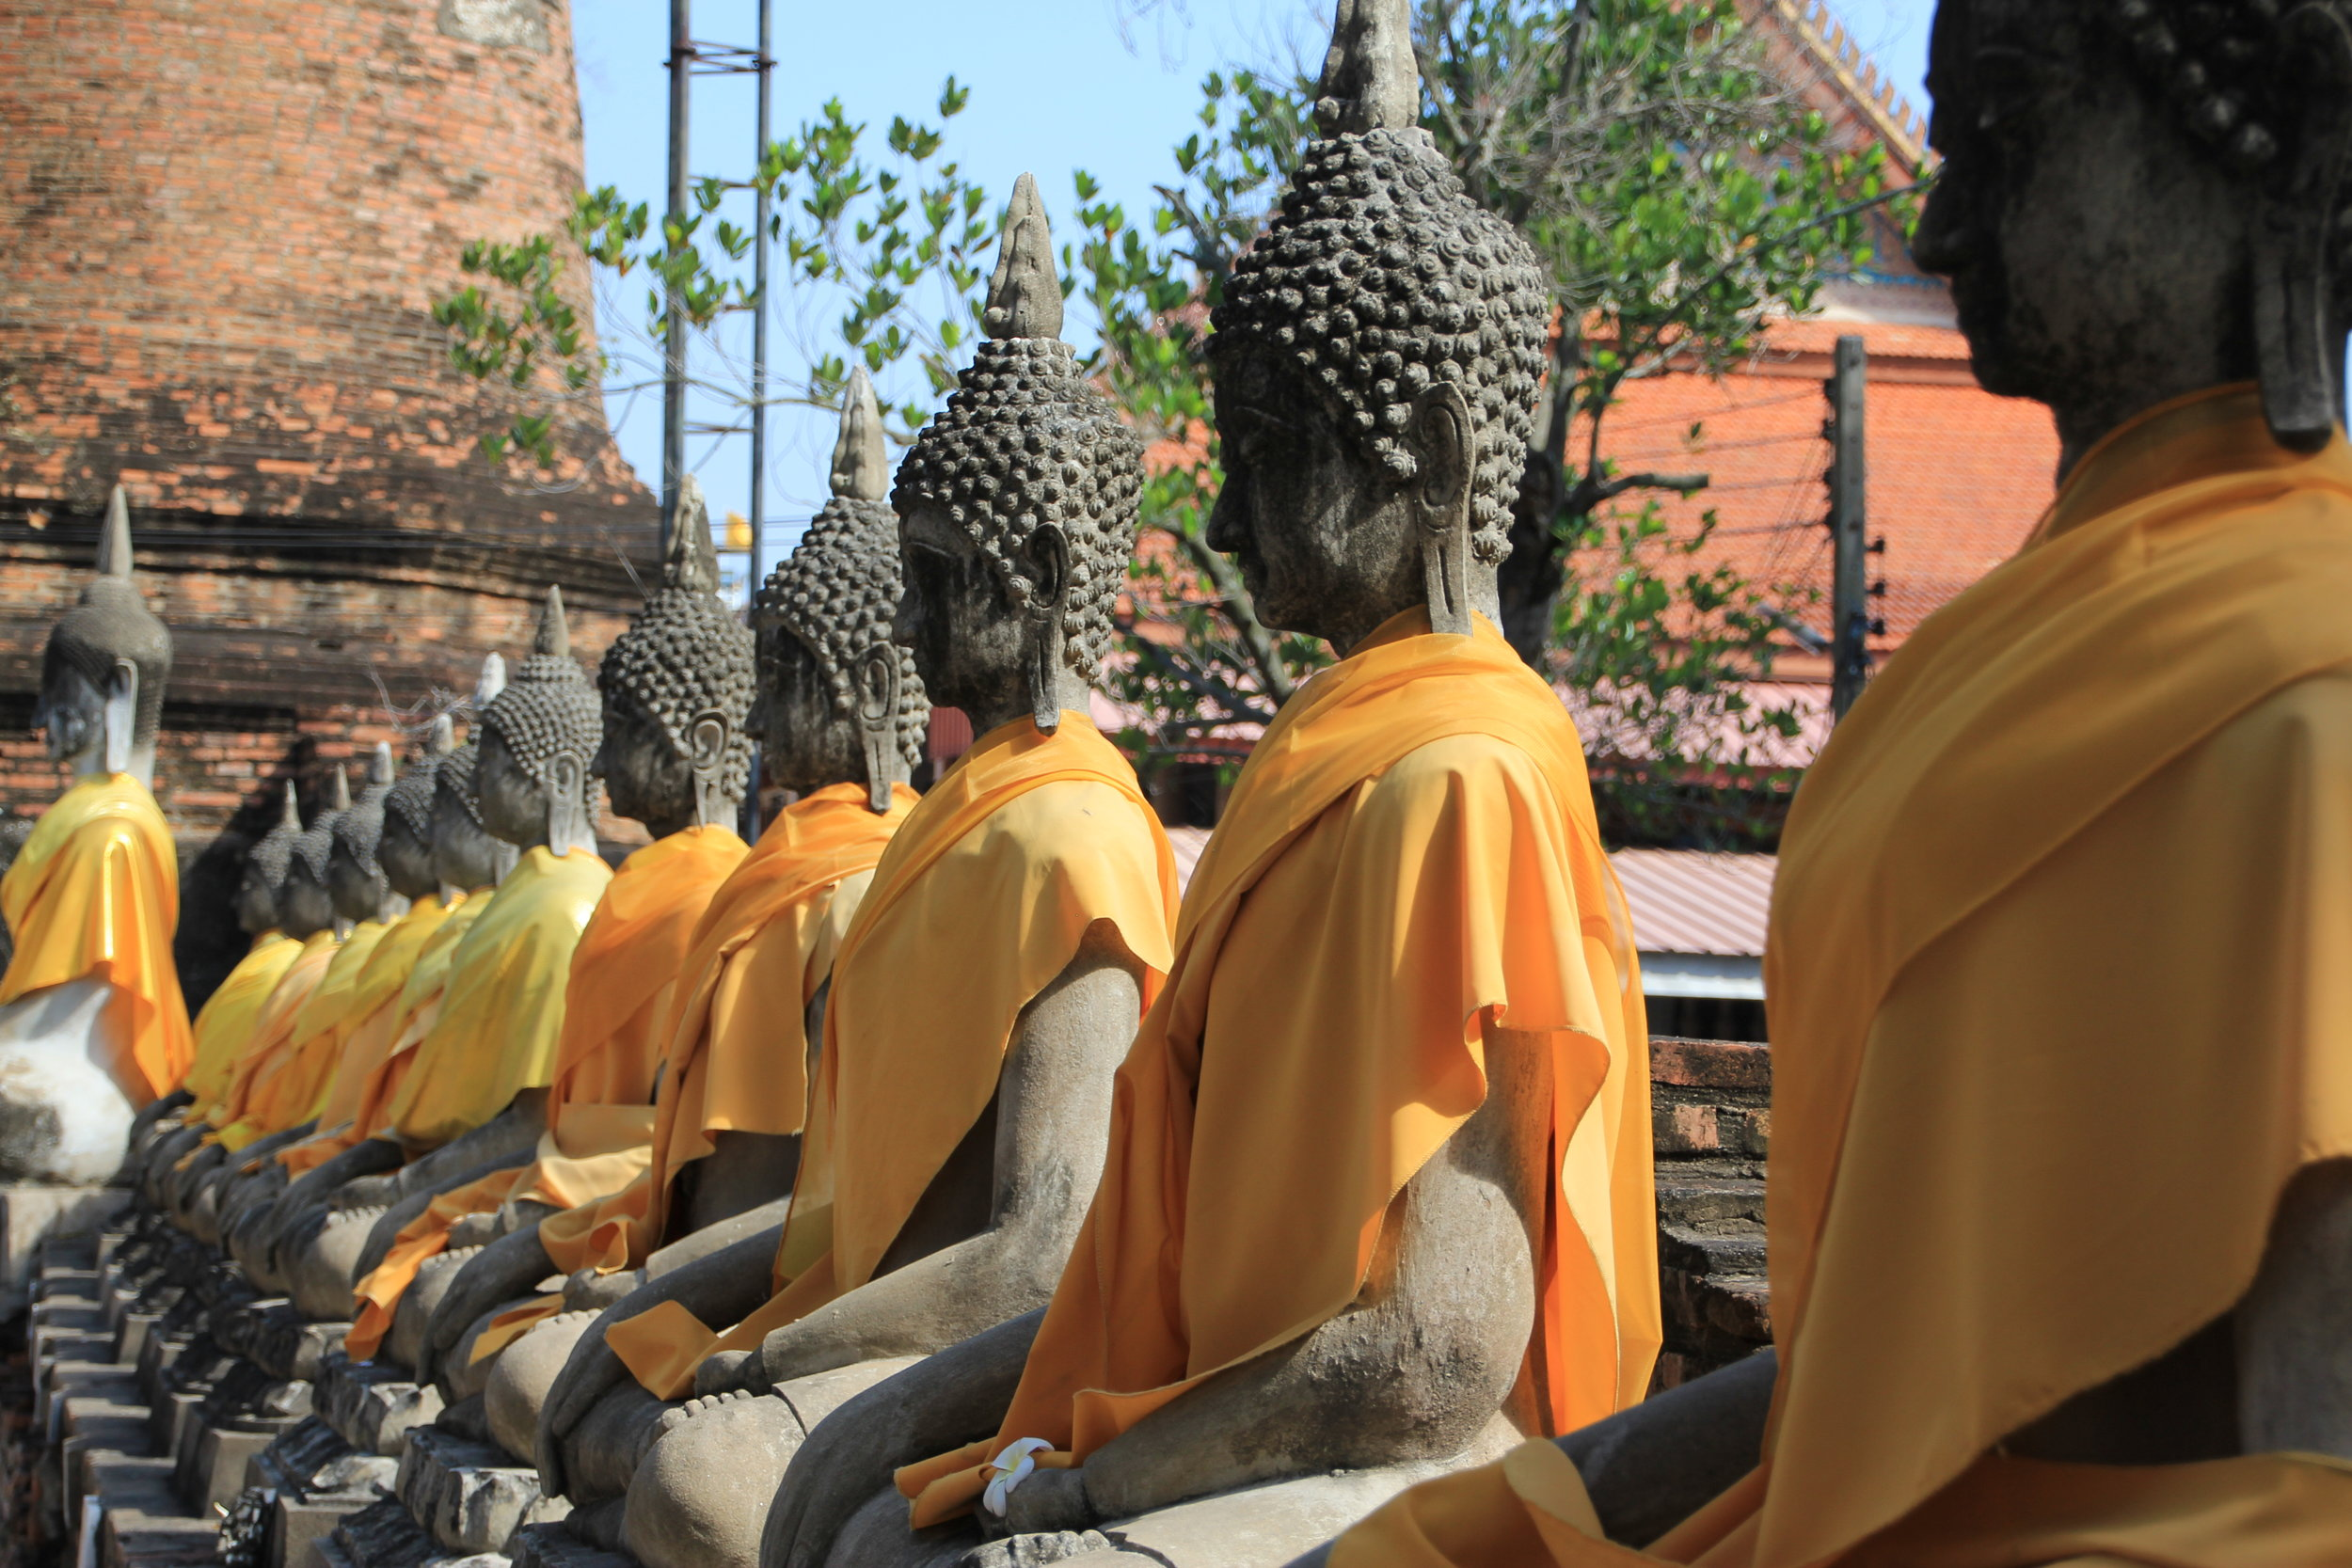 Buddha statues in a Thailand temple